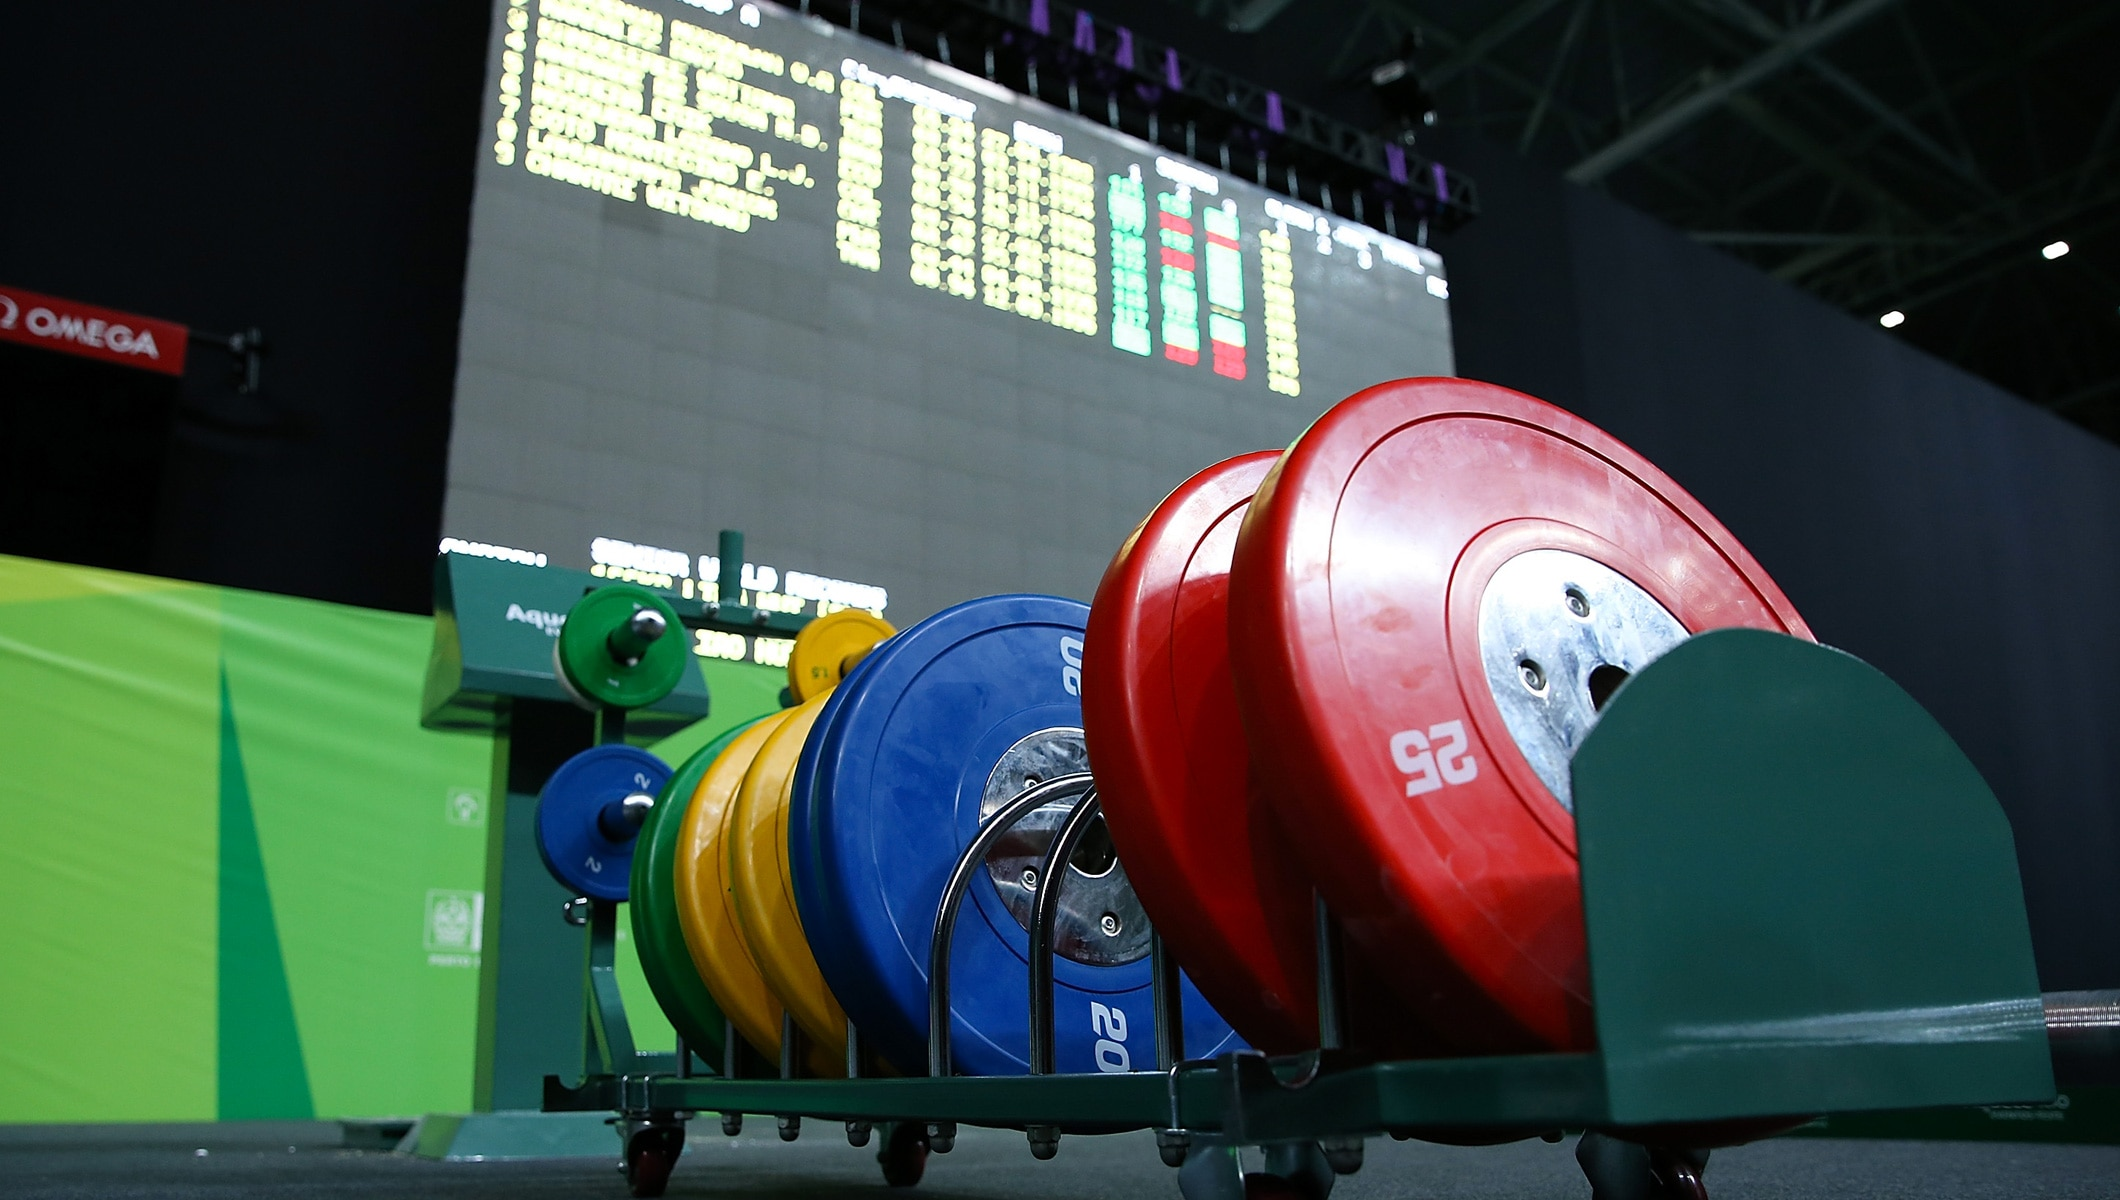 weightlifting test event